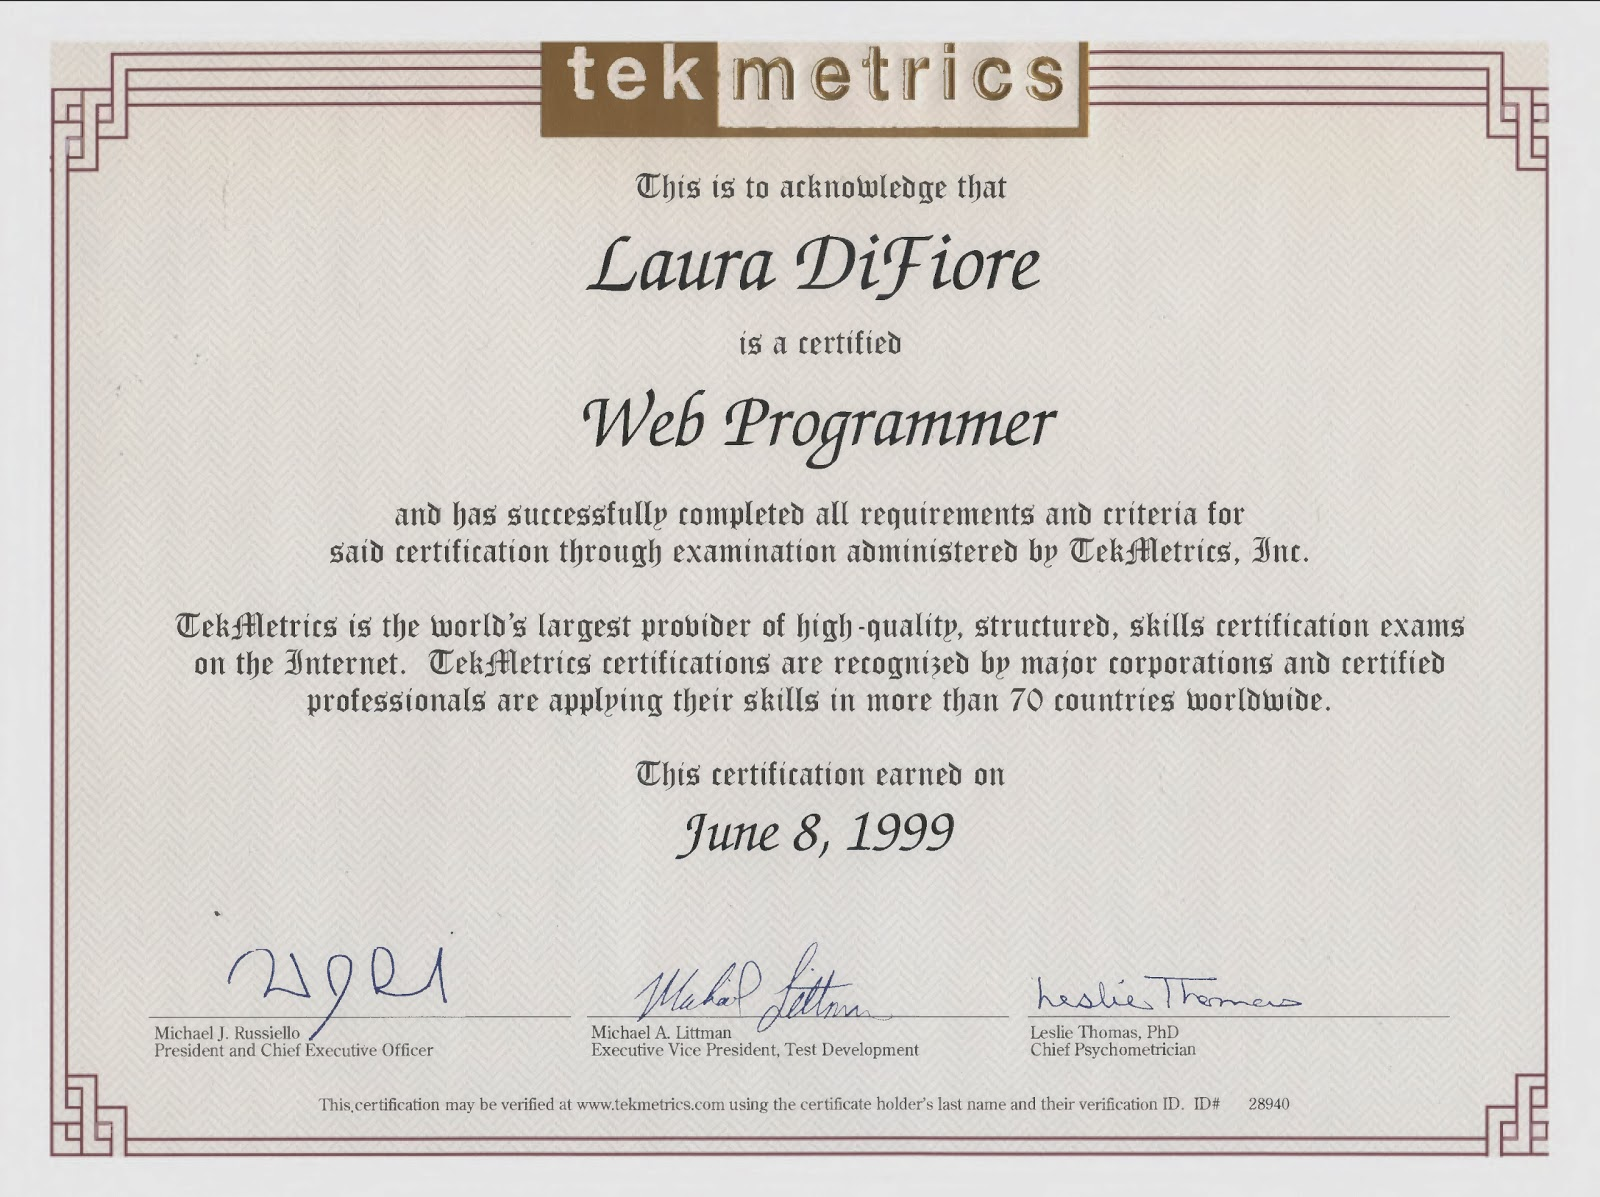 The Pages Of My Life Certificate Tekmetrics Htmlweb Programmer